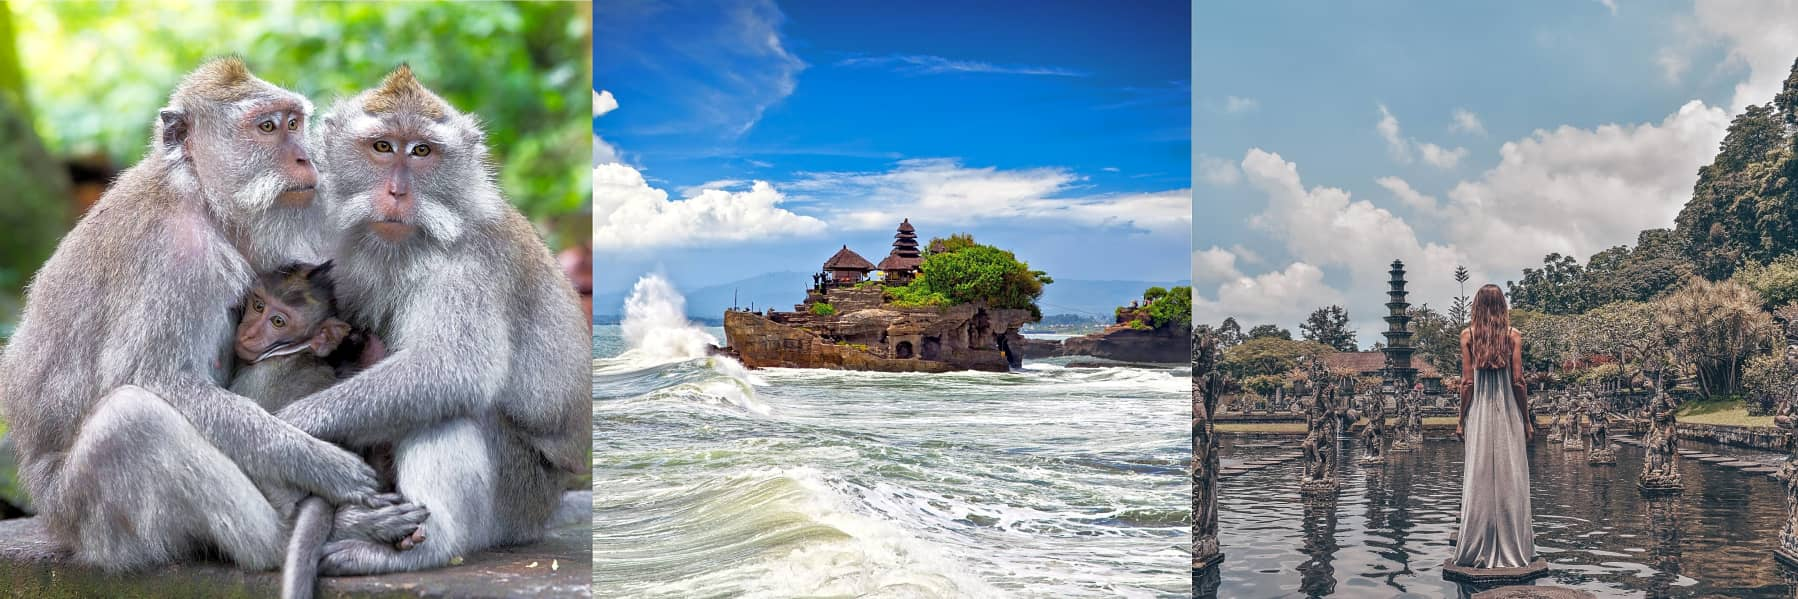 20% OFF TripGuru Signature Tours in Bali– 2 Days gallery